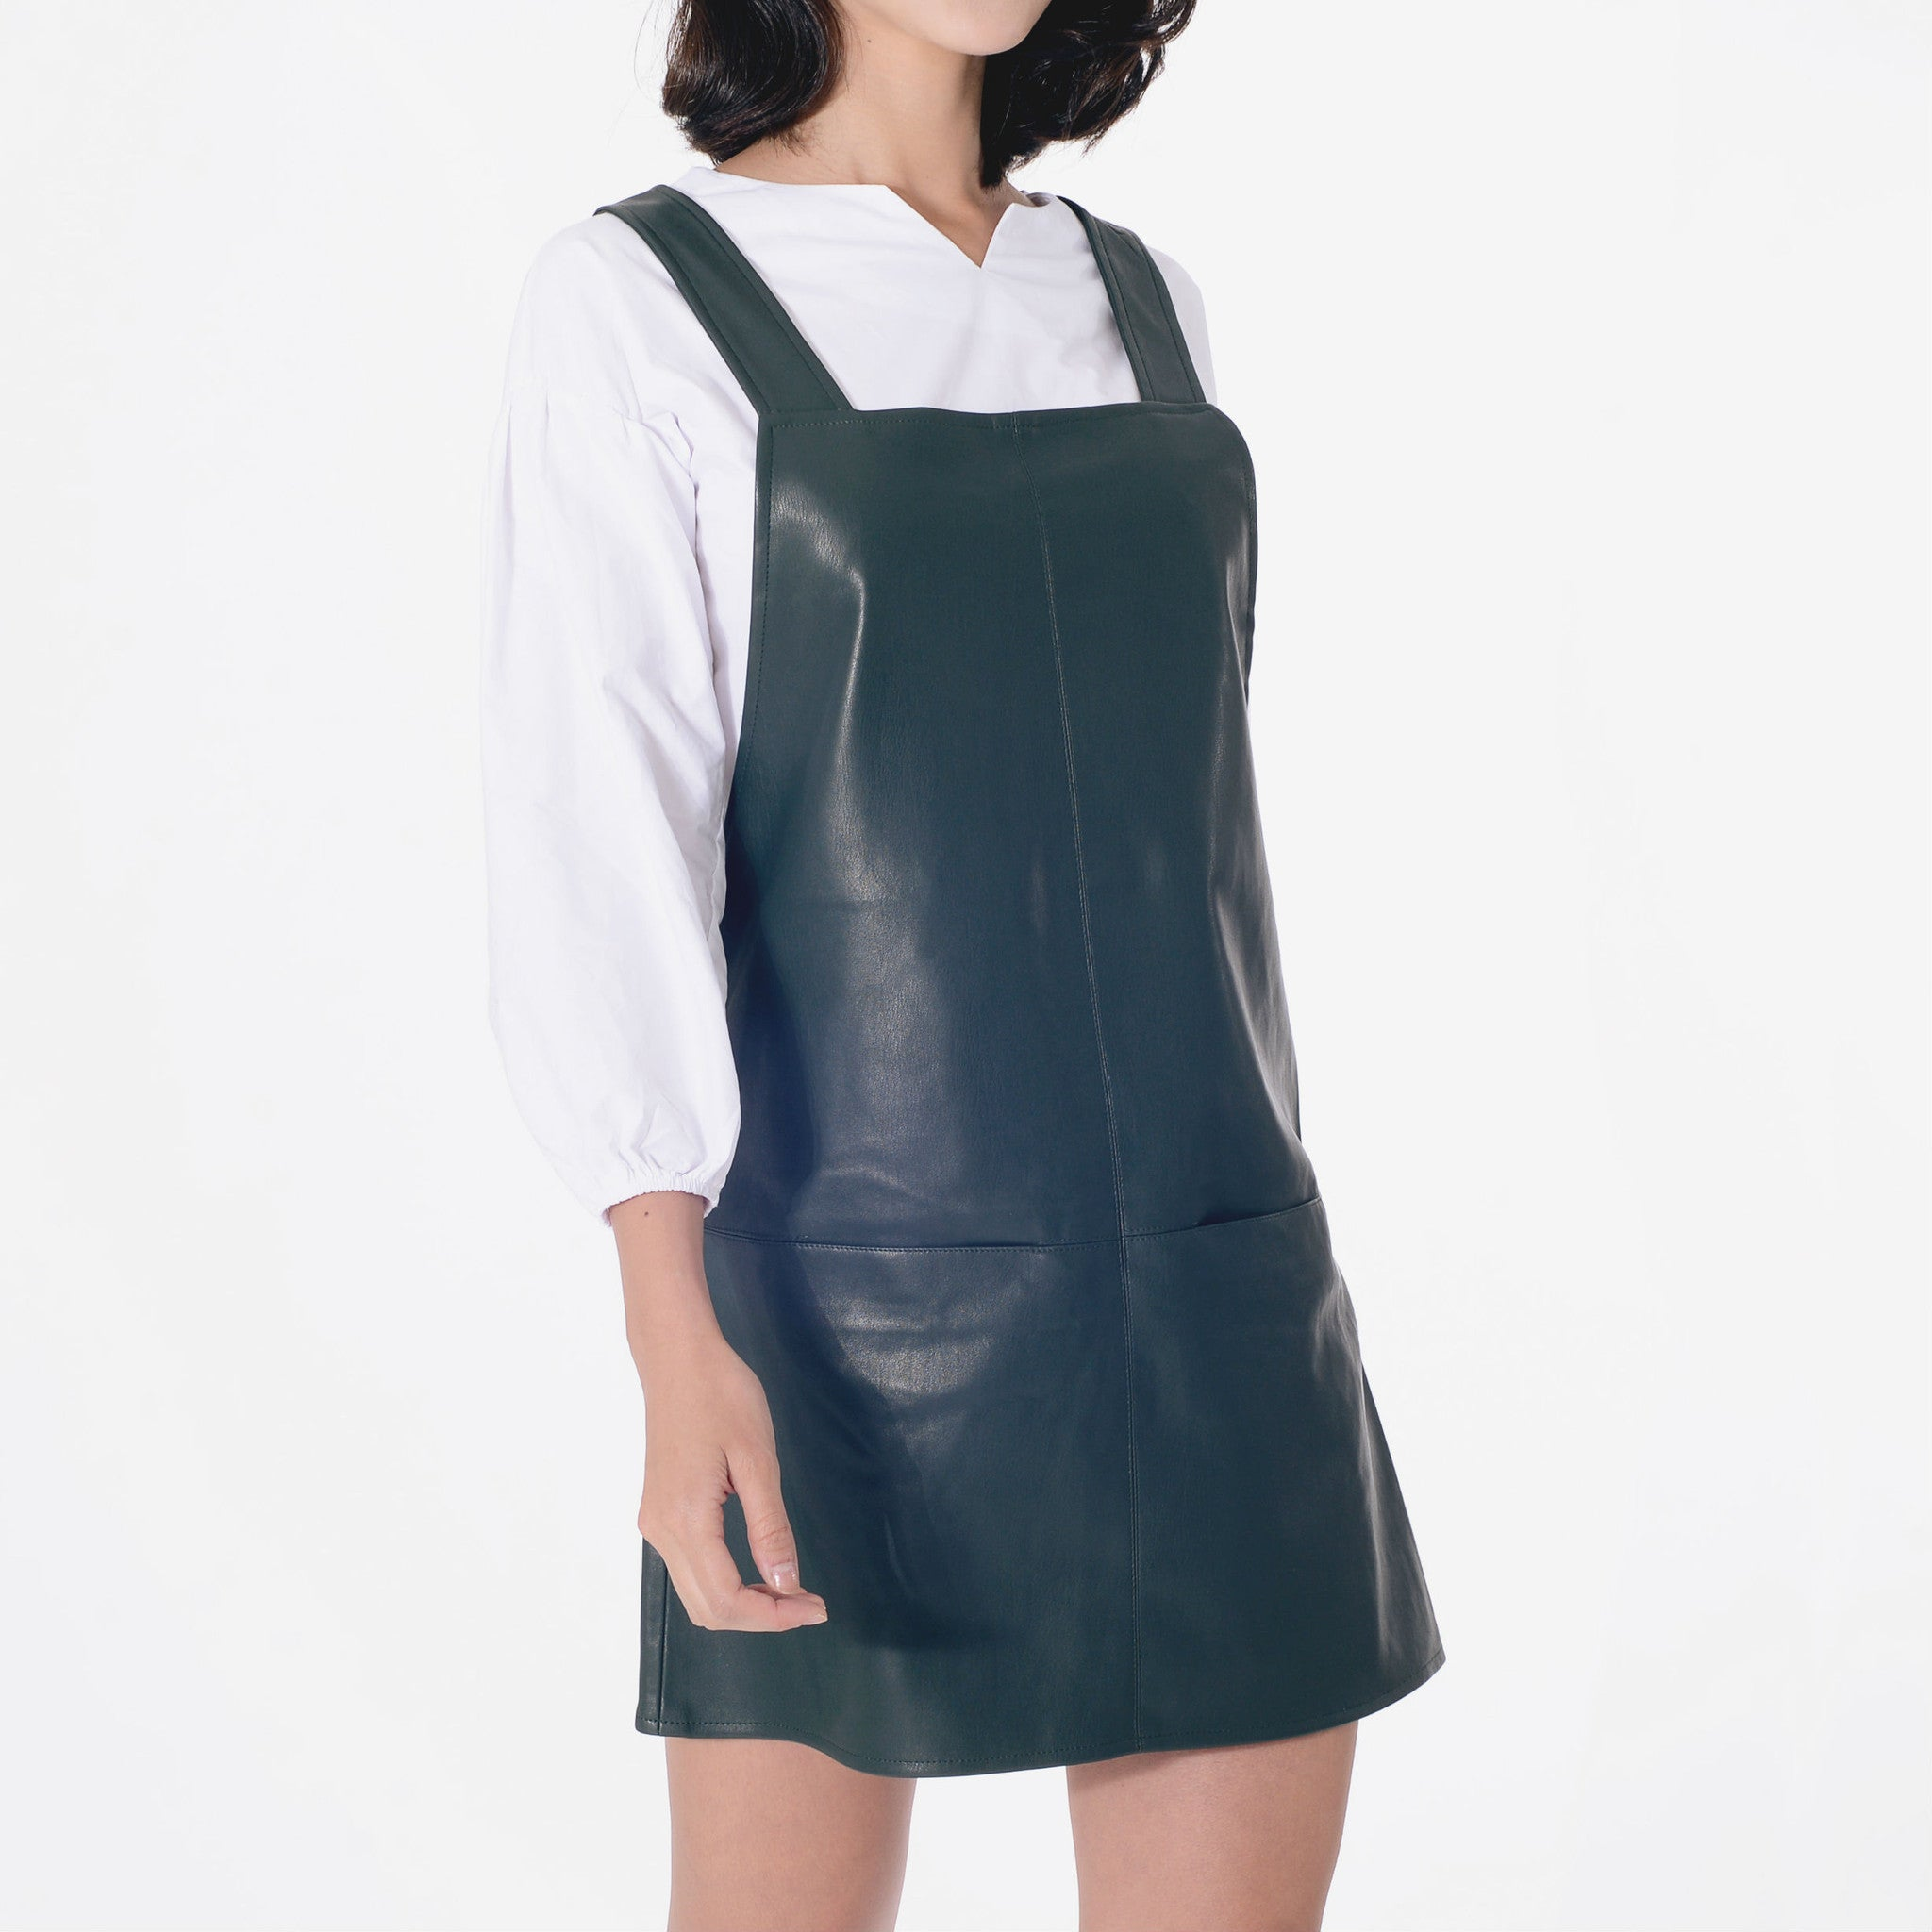 Leanne Leatherette Jumper - Green